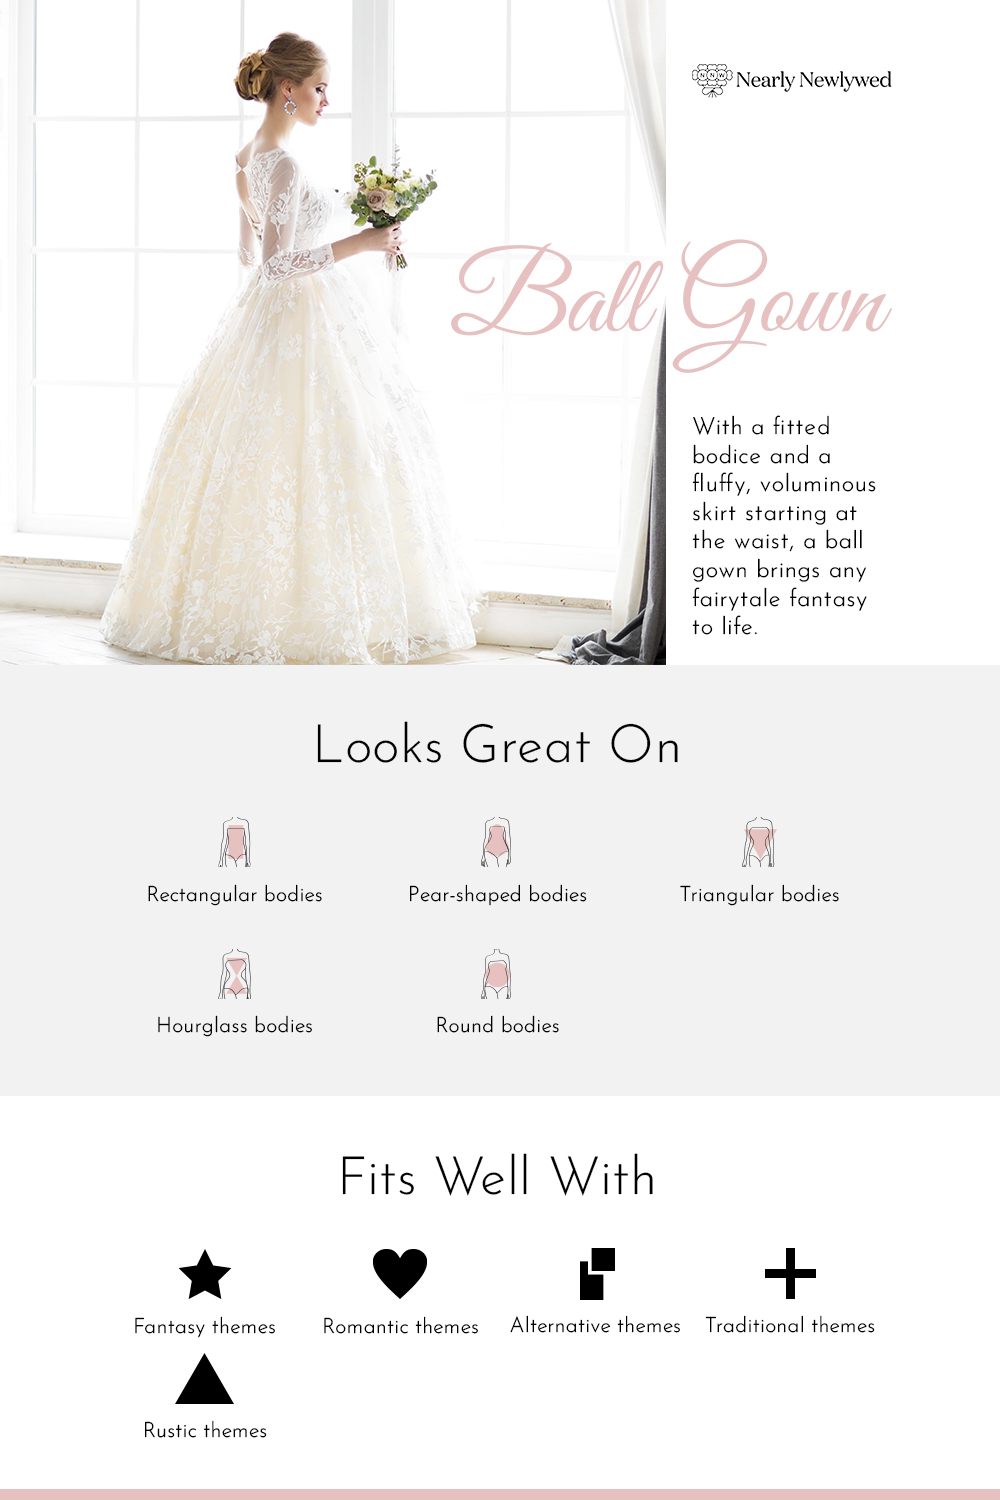 Ball Gown Wedding Dress Silhouette Infographic